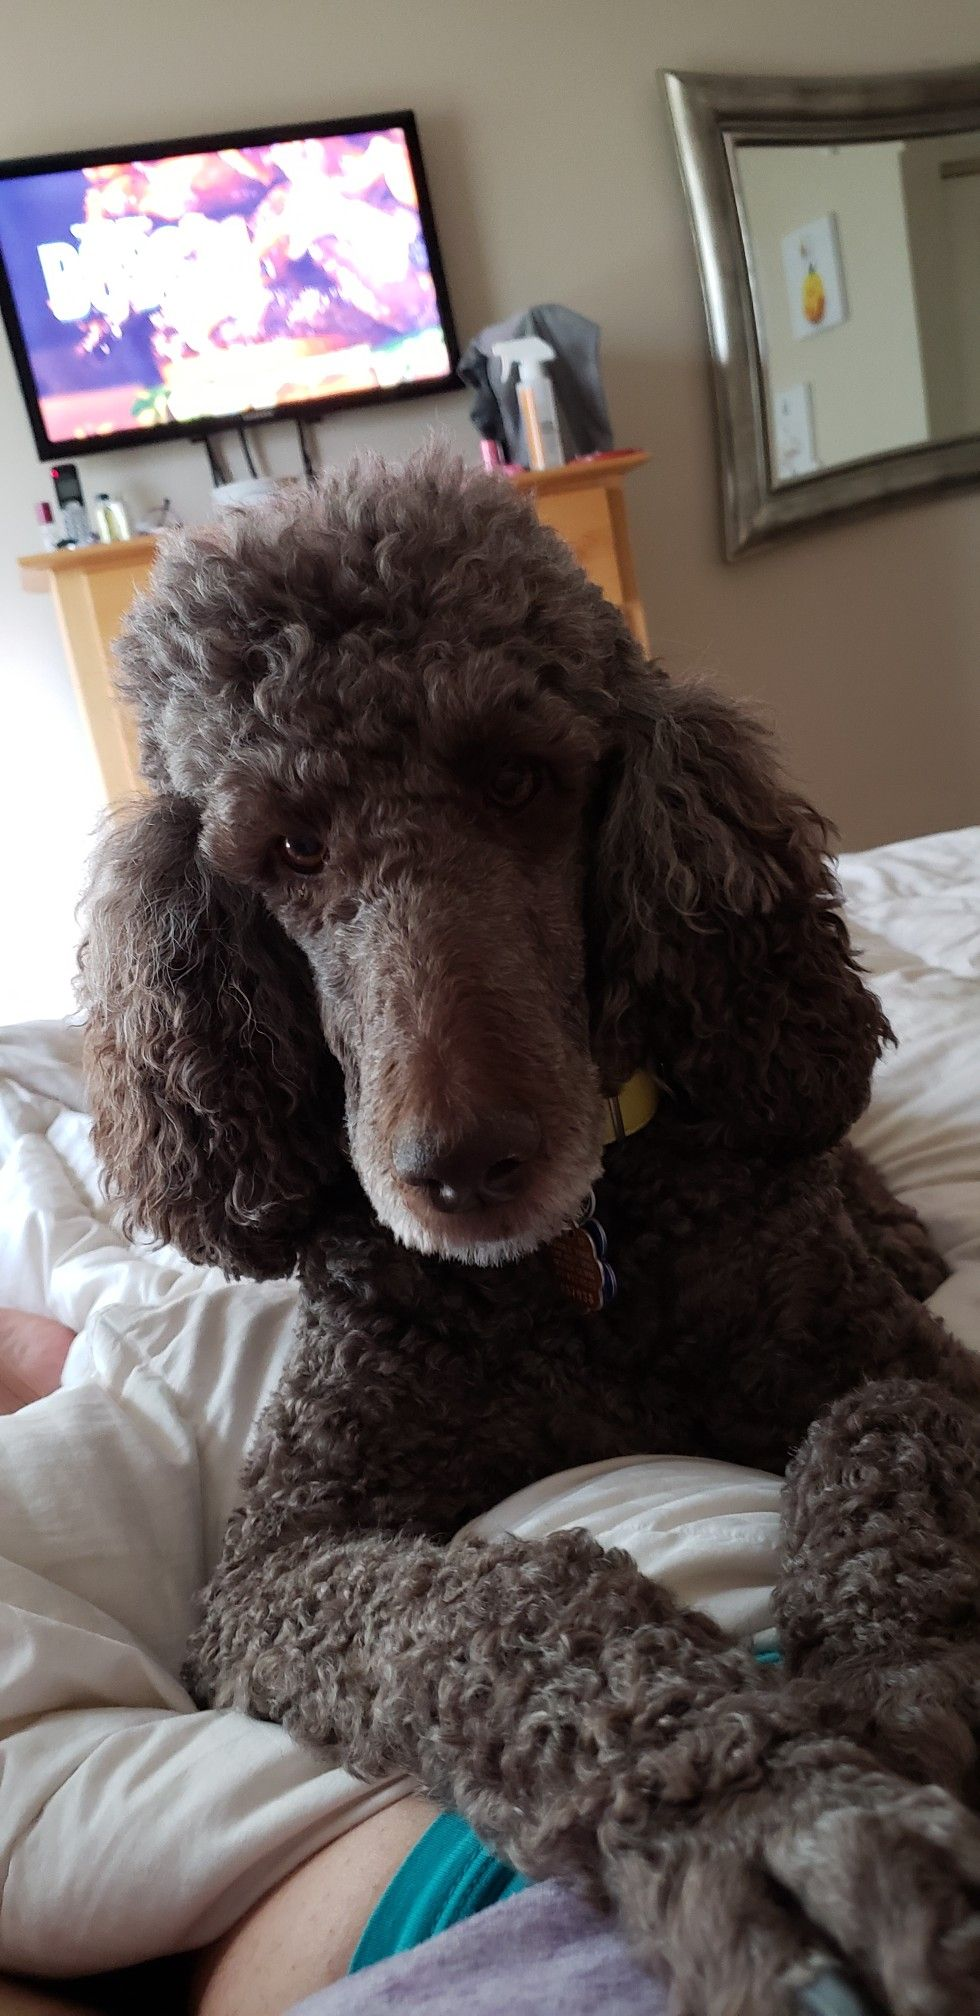 Sweetest face ever Standard poodle, Poodle, Furry friend